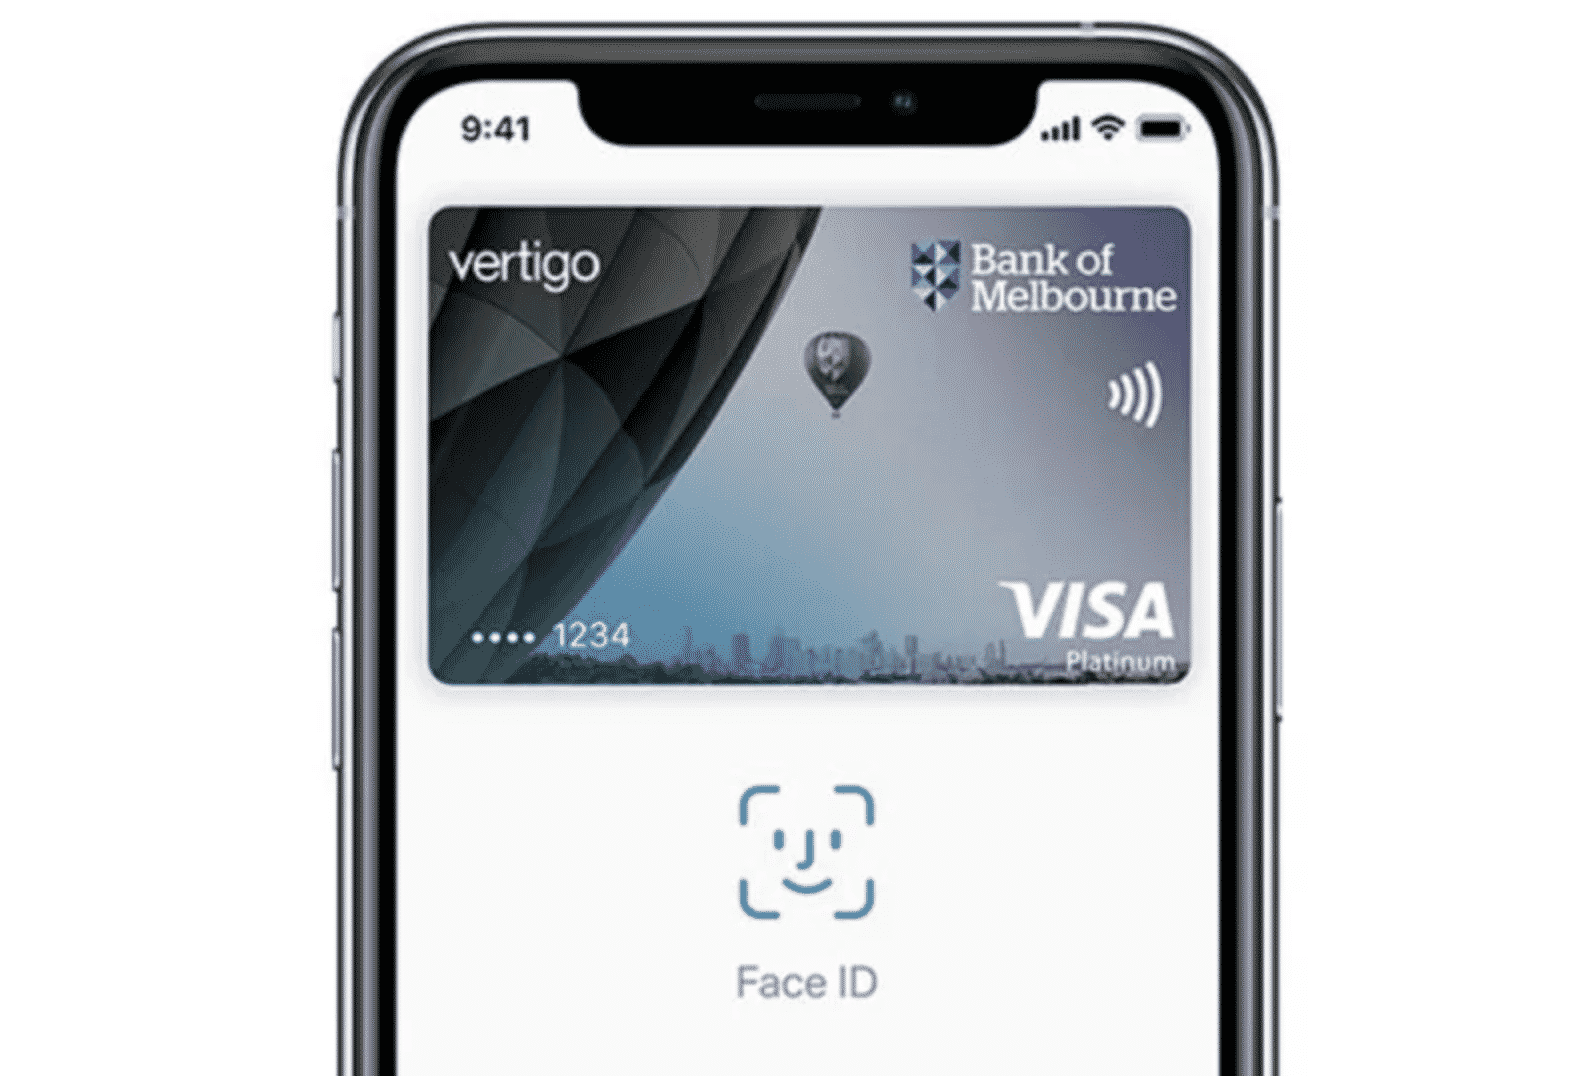 Apple Pay Support in Australia Expands to Westpac Bank